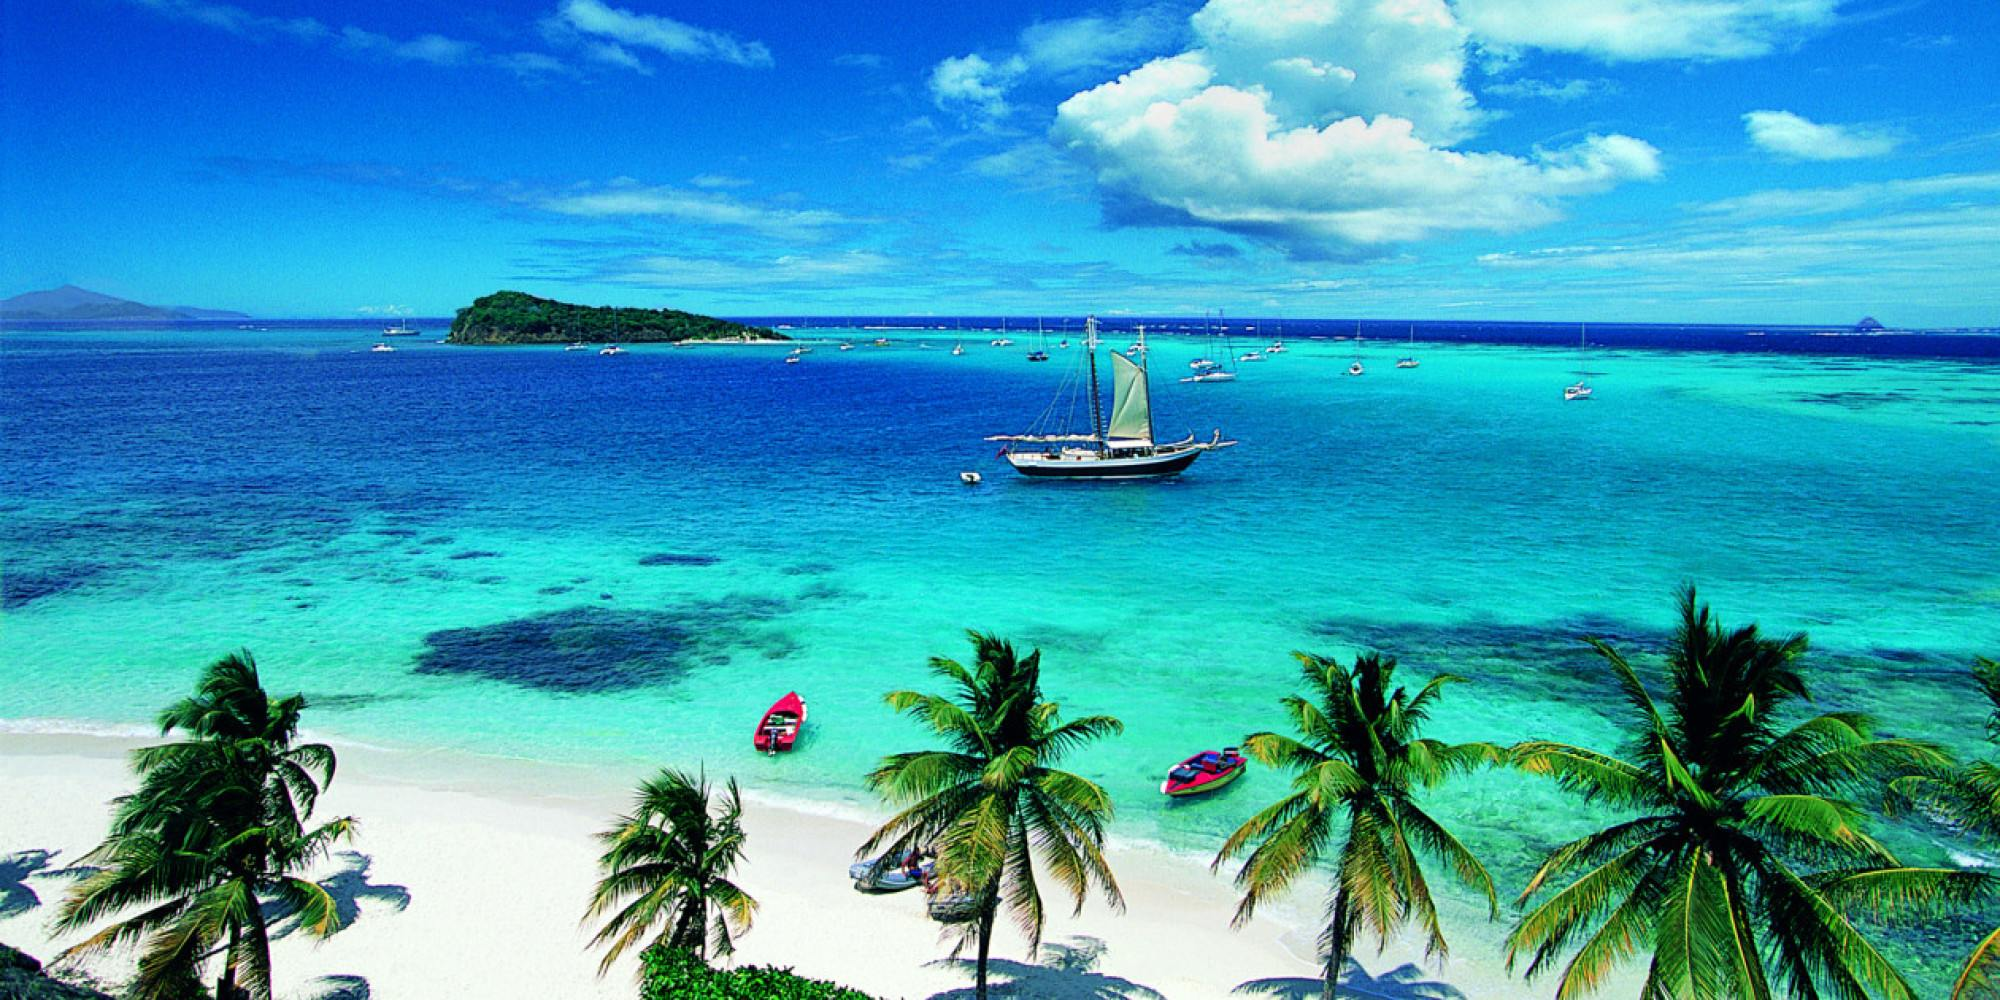 Sailboats in the Tobago Cays - Grenadines.